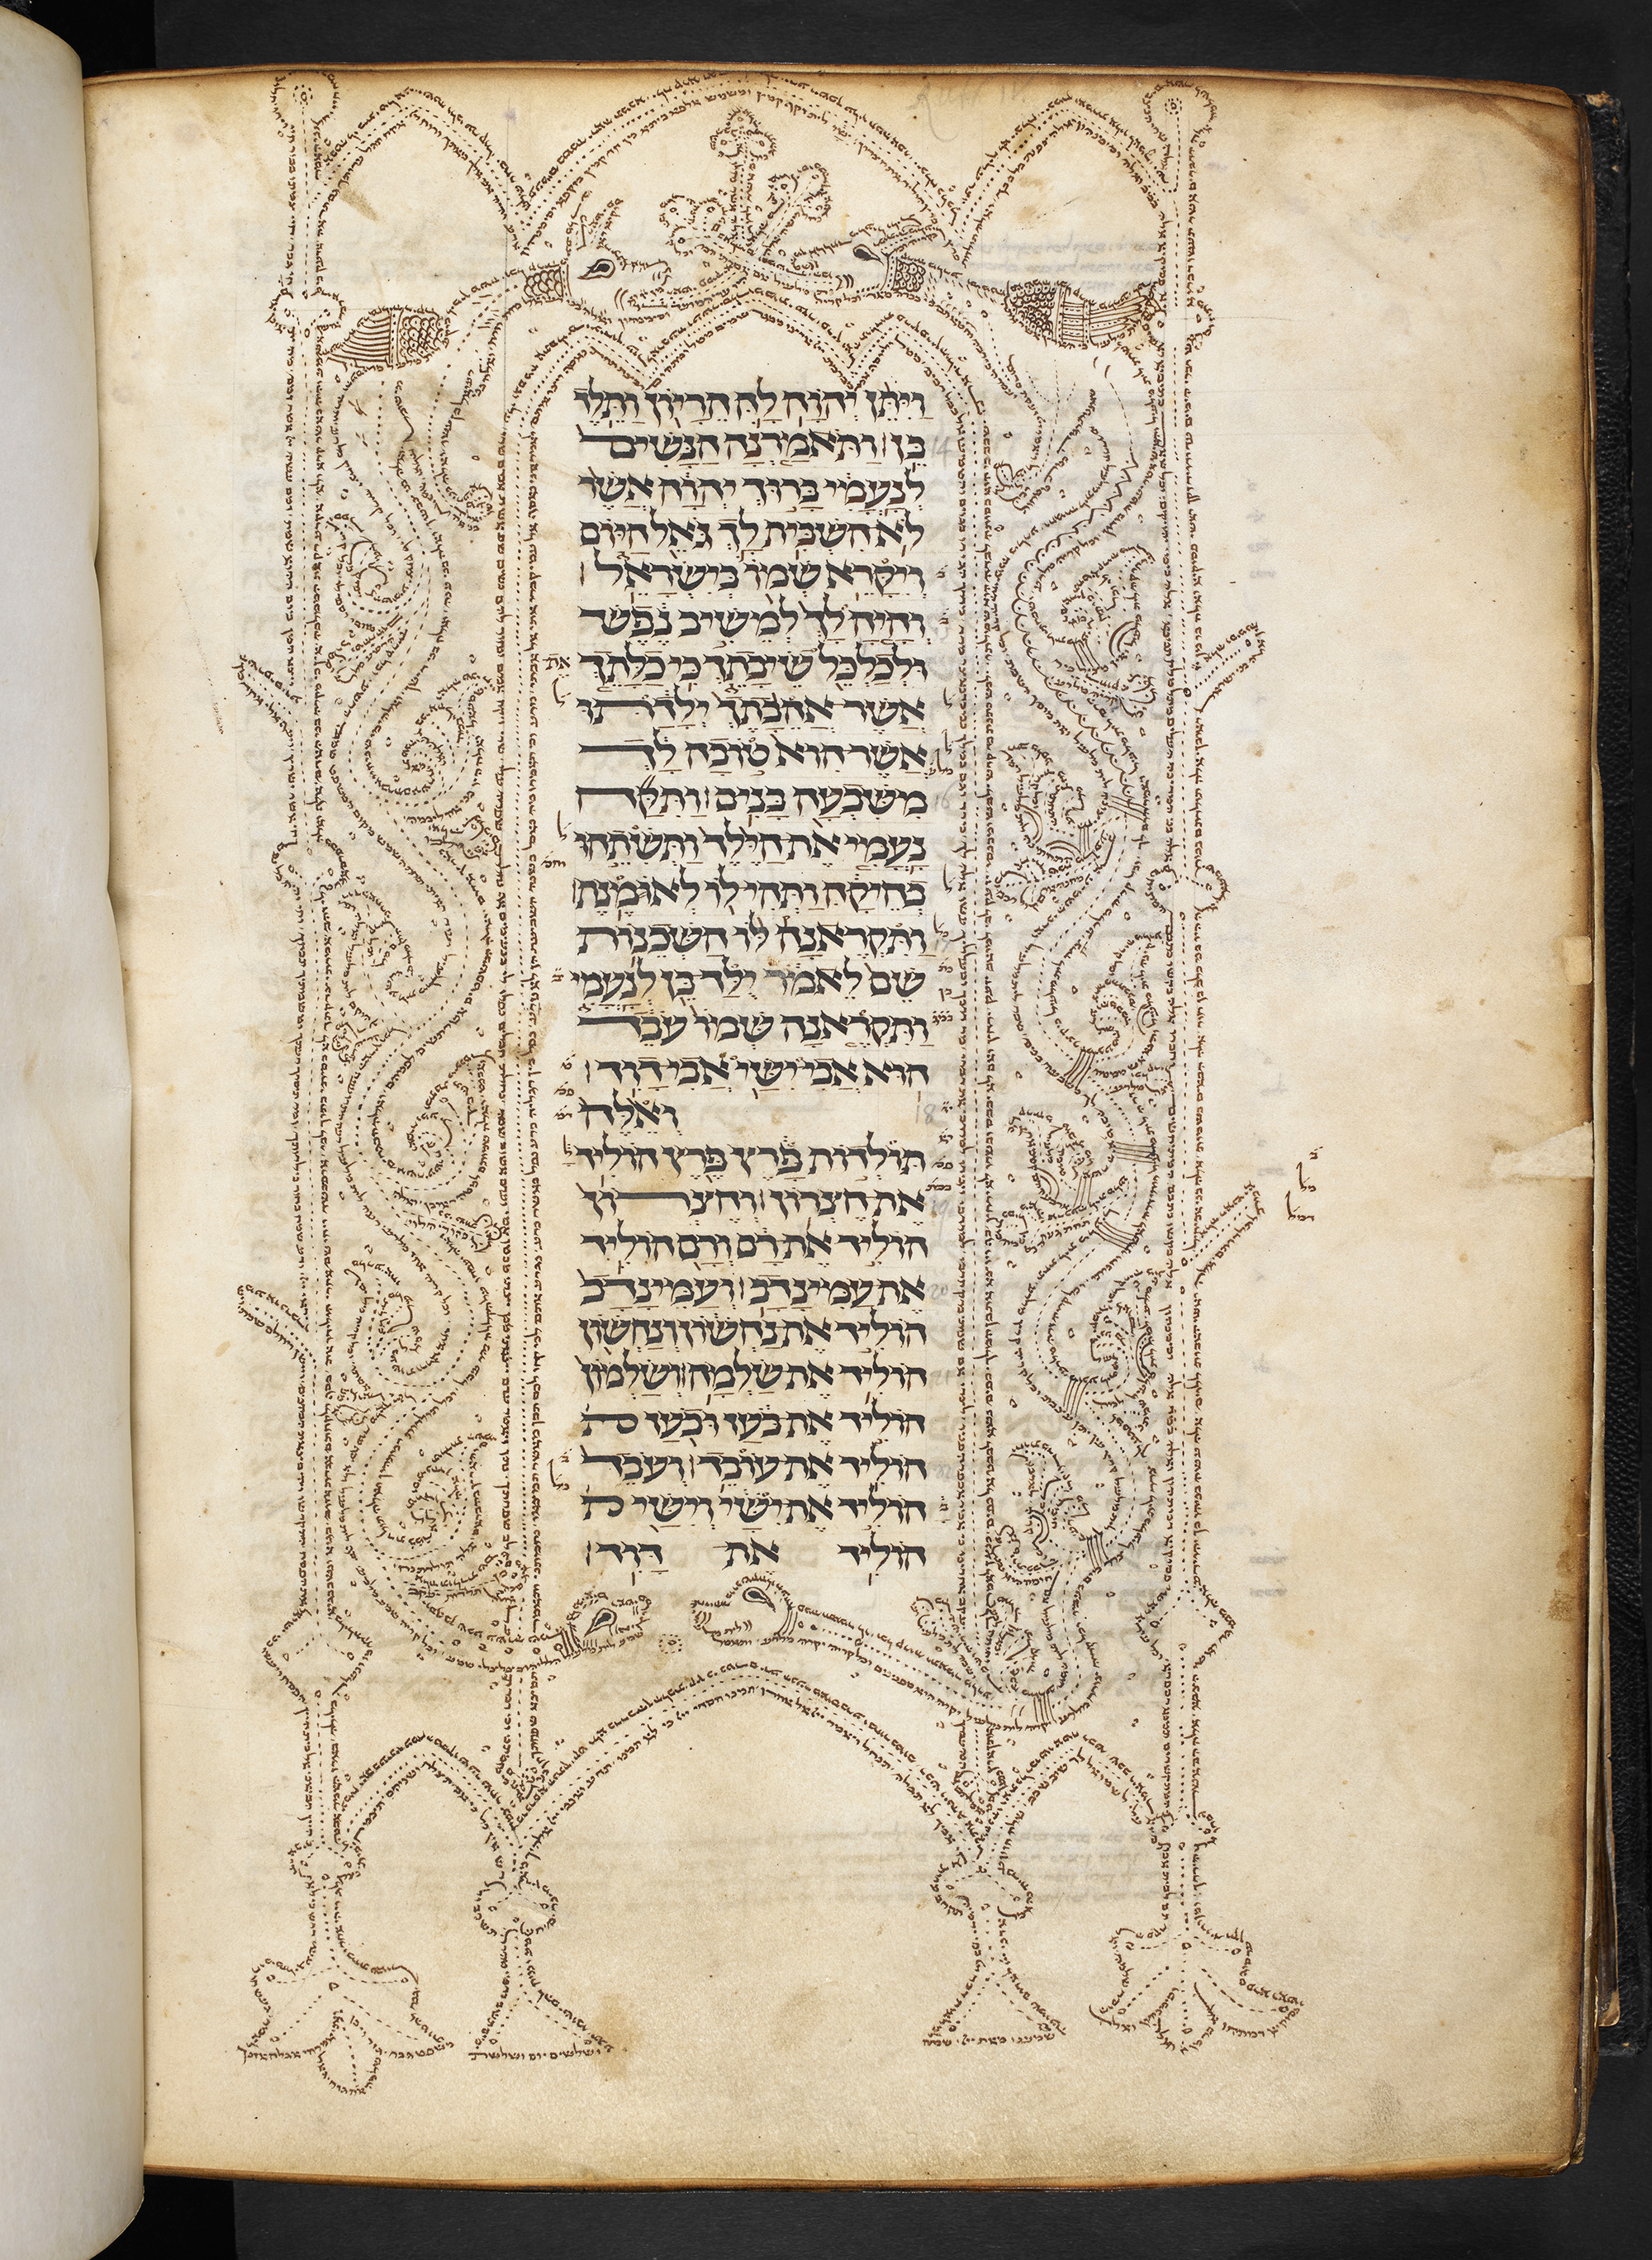 Figured micrography in Jonah Pentateuch, Germany, 2nd half of 13th century CE, Add MS 21160, Hebrew Manuscripts Digitisation Project, British Library